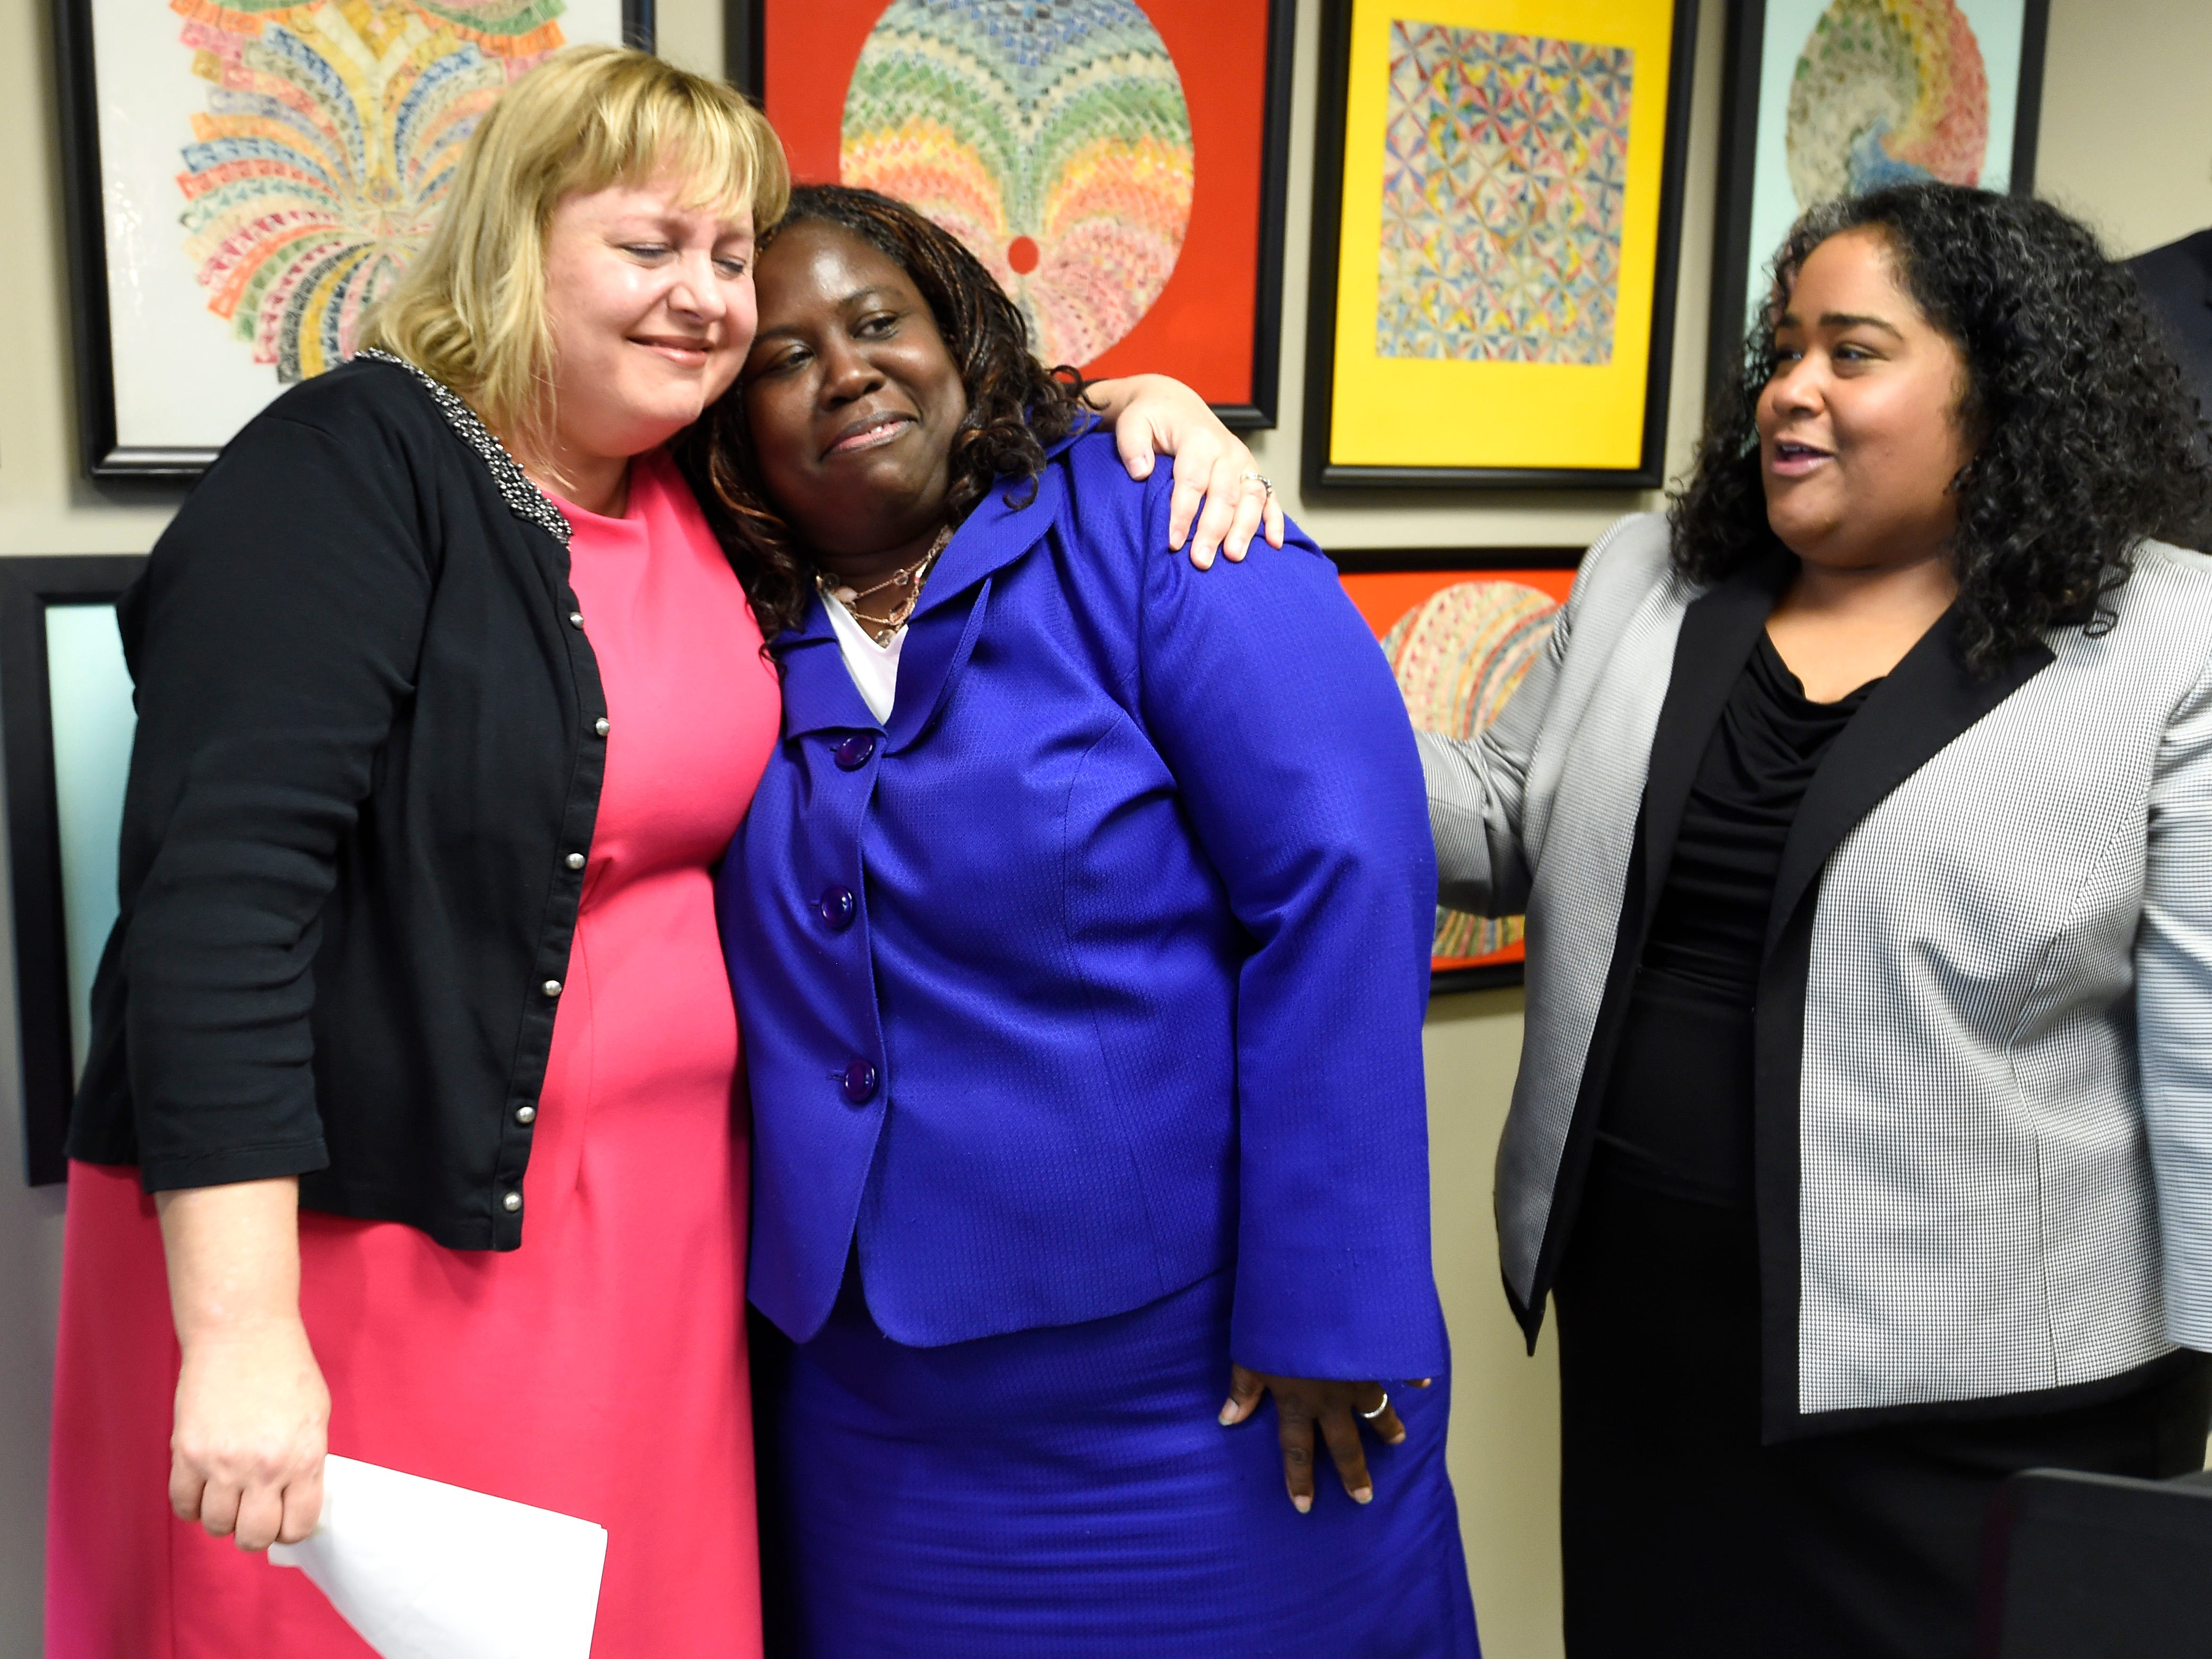 Juvenile Court Administrator Kathy Sinback hugs Judge Sheila Calloway with State Sen. Raumesh Akbari , D-Memphis, at a press conference Monday, Jan. 7, 2019, in Nashville, Tenn., after Gov. Bill Haslam granted full clemency to Cyntoia Brown, and set an Aug. 7 release date for her from prison.